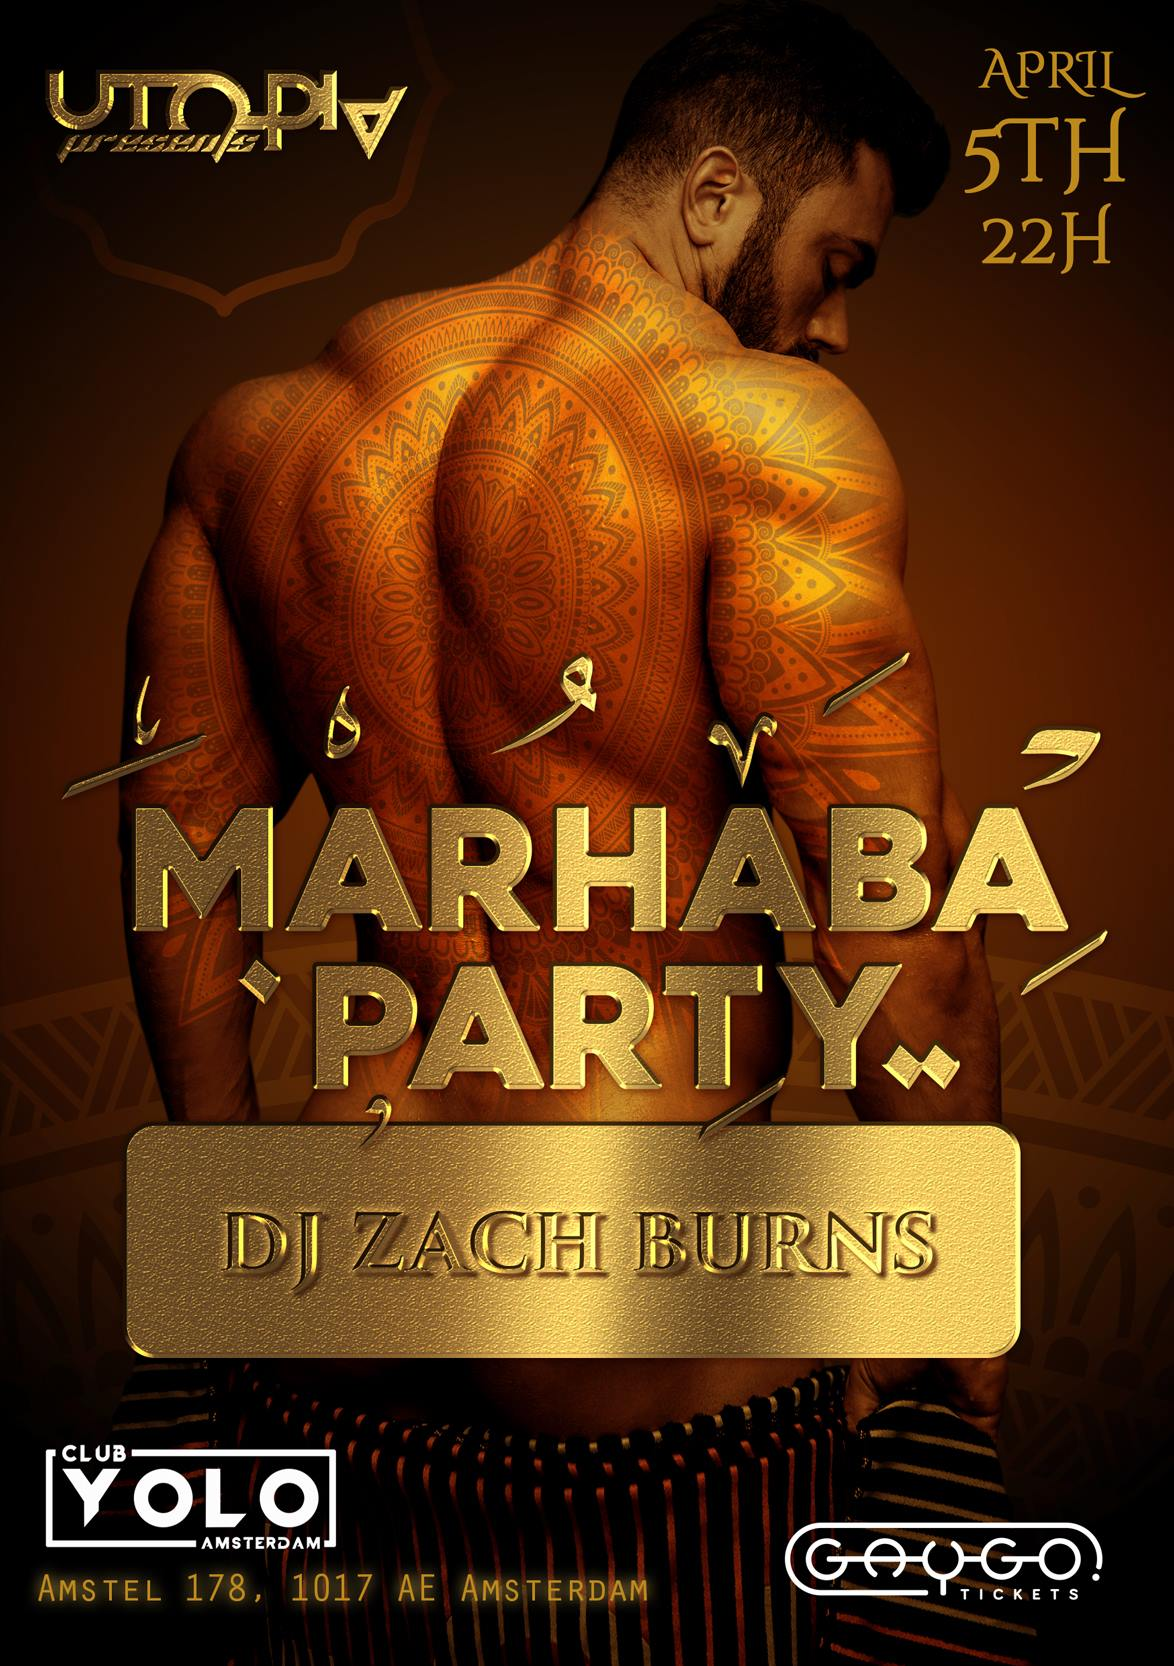 Marhaba Amsterdam Club Yolo Gay Middle Eastern Dance Party